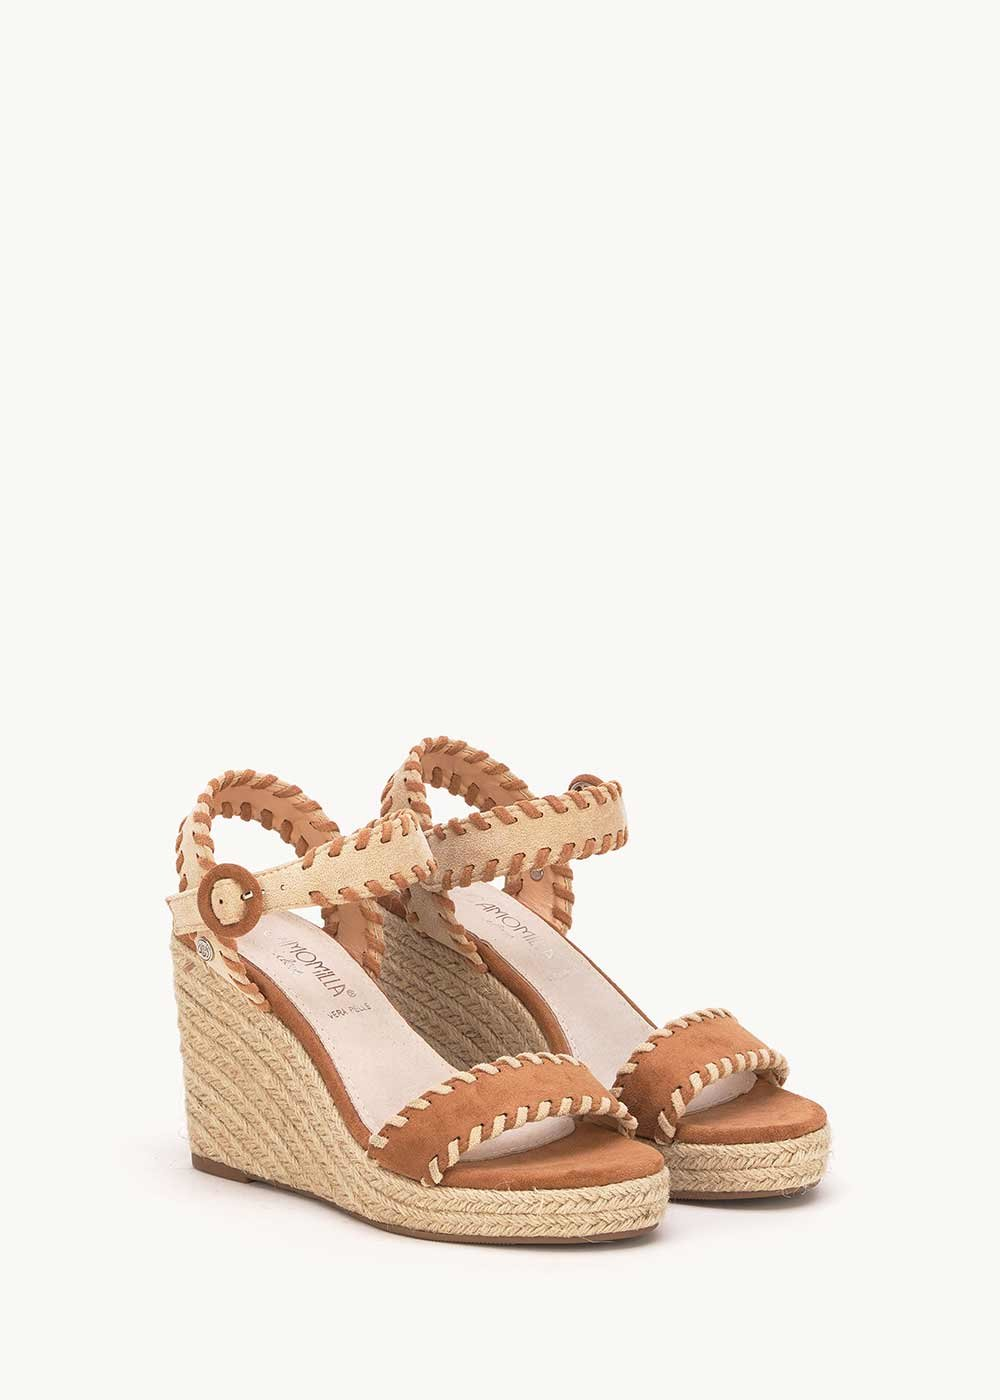 Saint sandal with contrasting stitching - Pecan / Doeskin - Woman